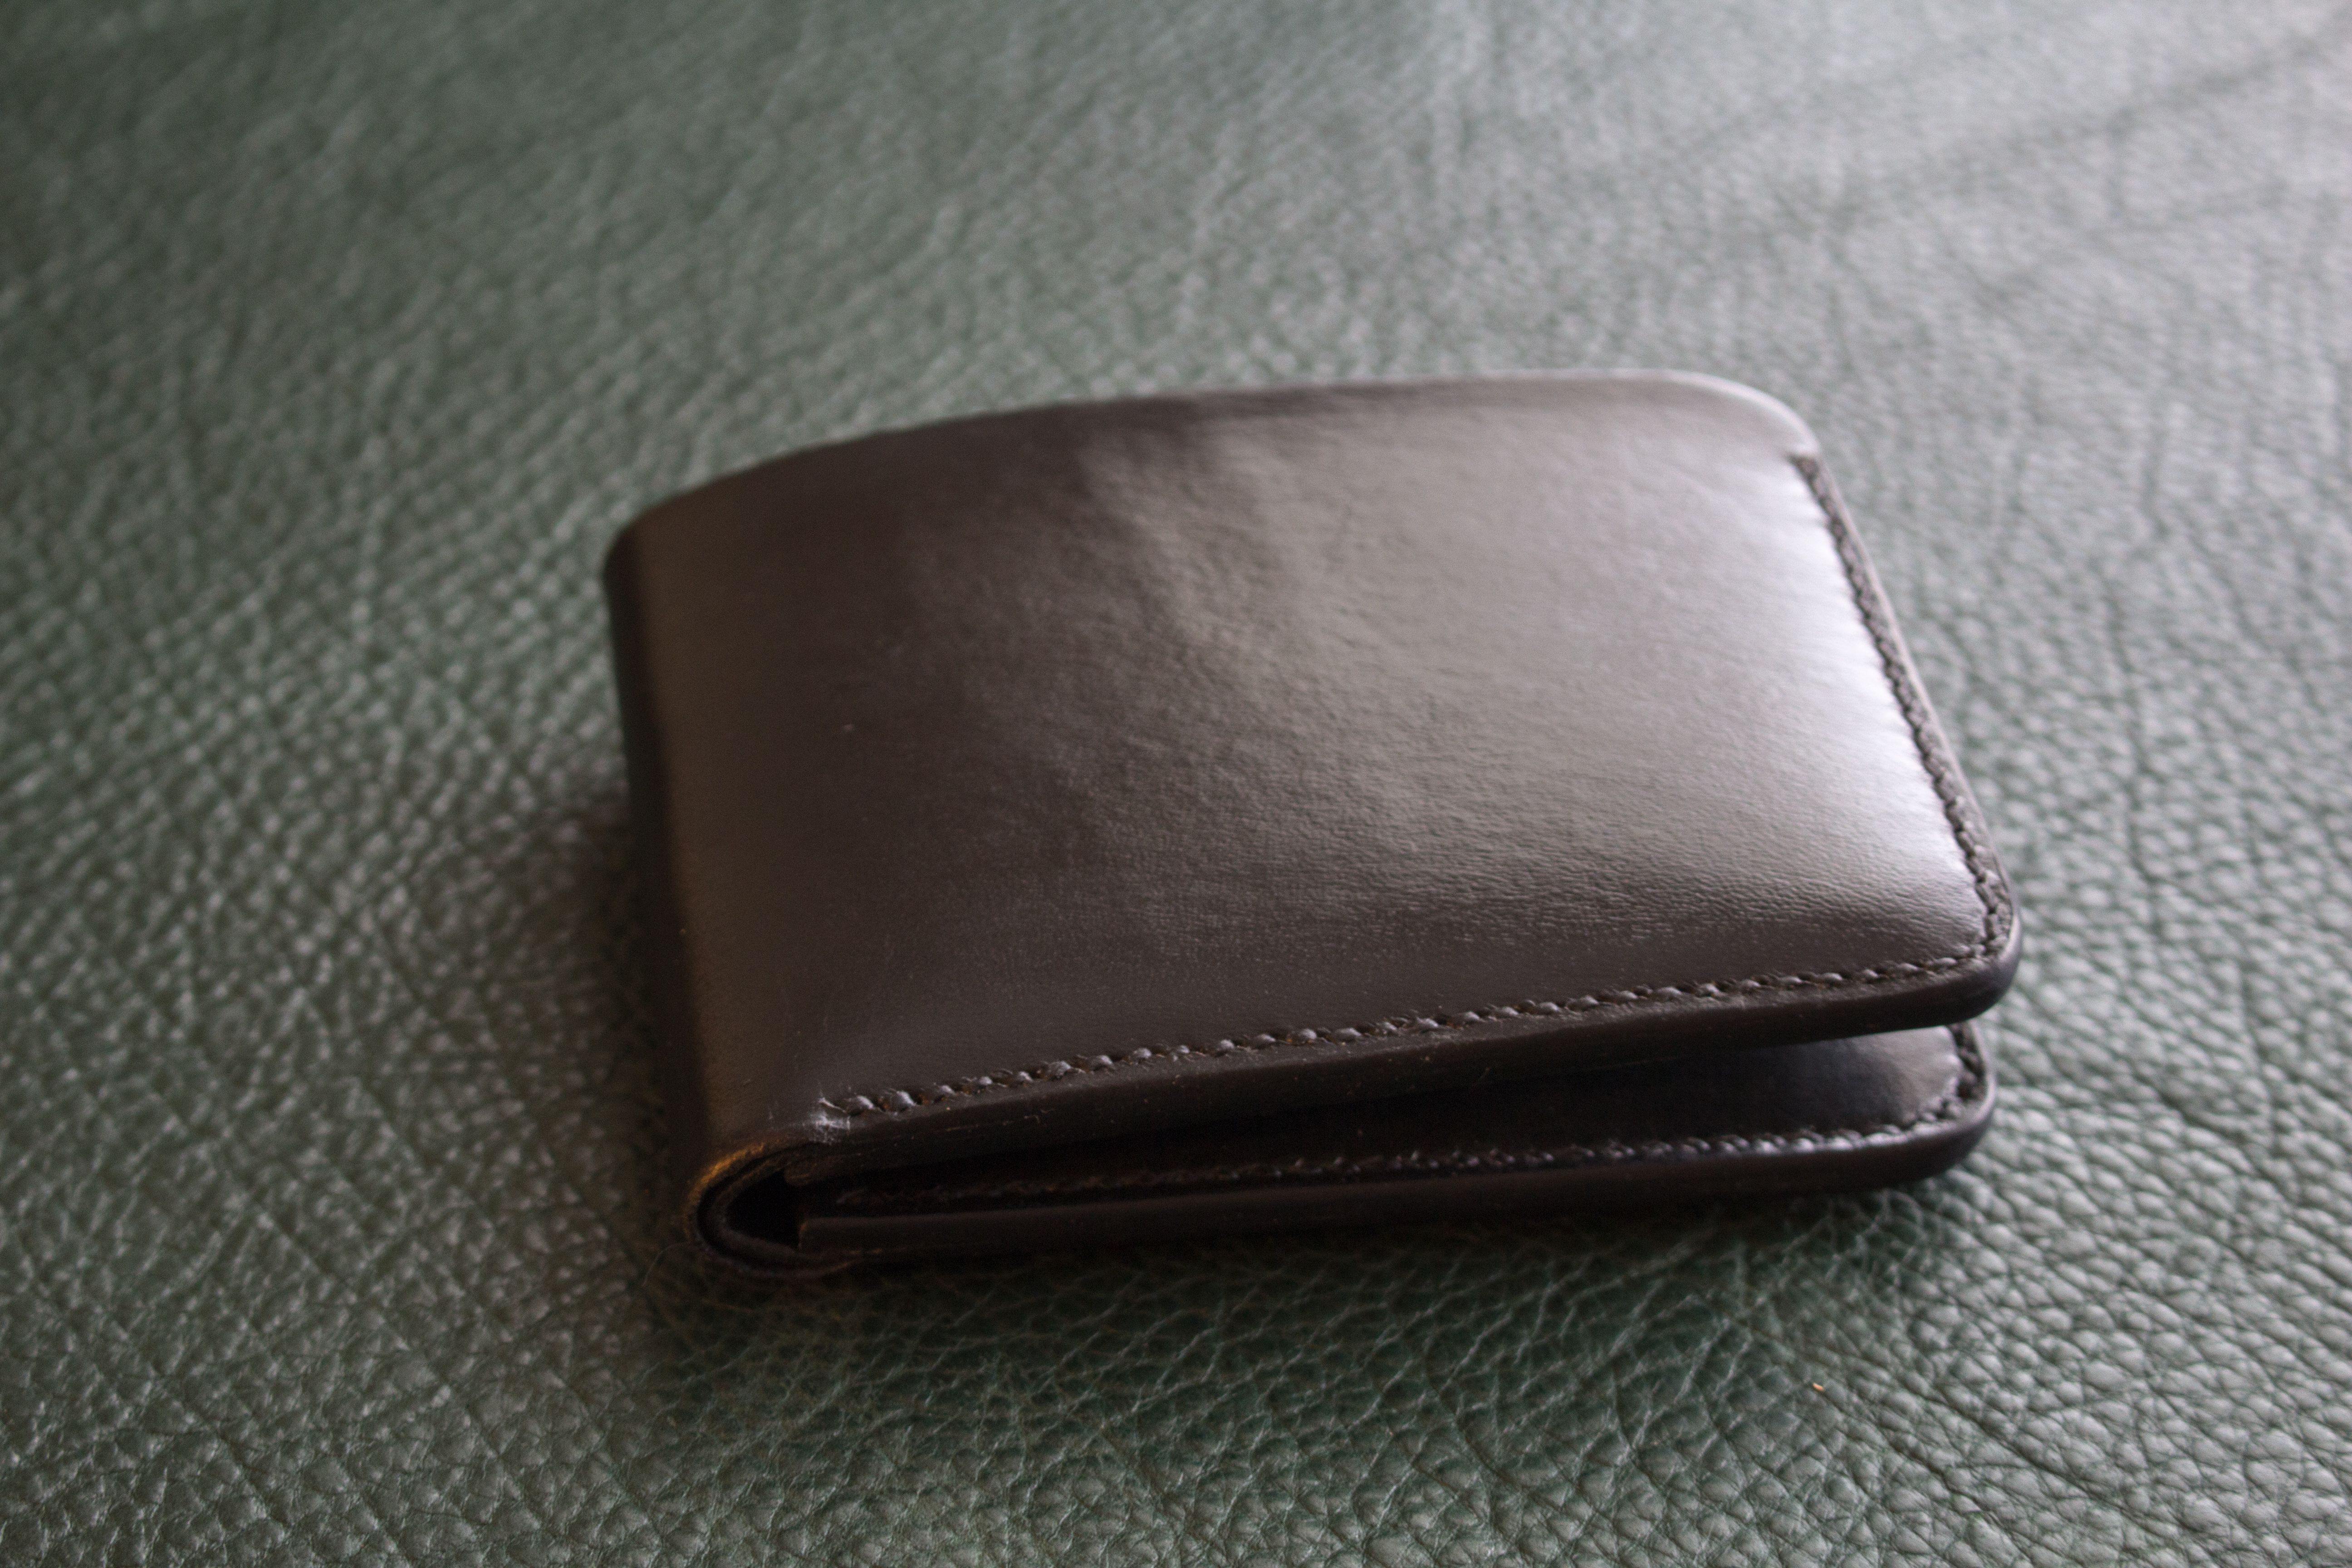 Black veg tan leather bifold #wallet. Hand dyed natural Veg Tan leather. 4 card slots, 2 hidden pockets behind, and a full length bill slot.